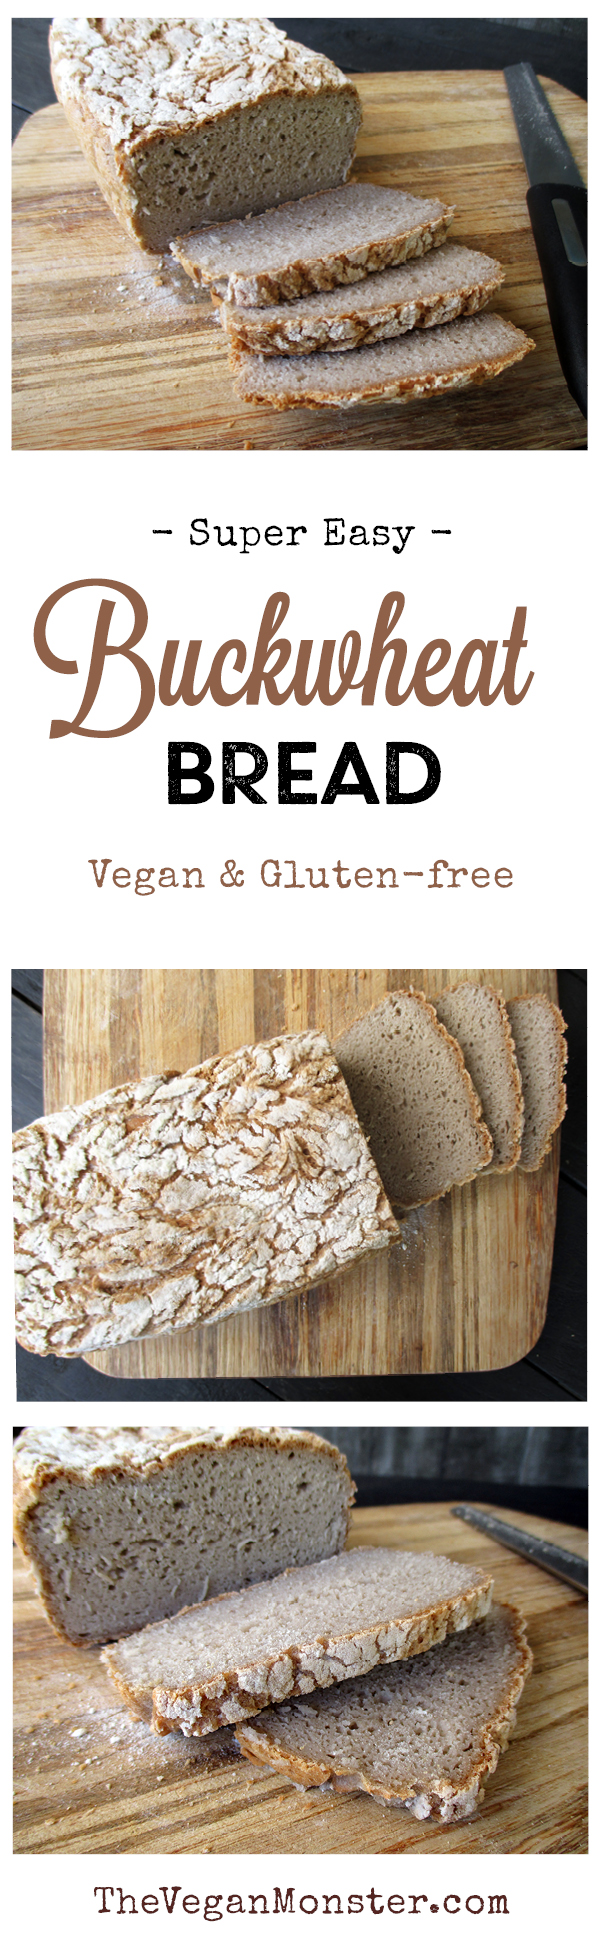 Vegan Gluten-free Super Easy Buckwheat Bread Recipe